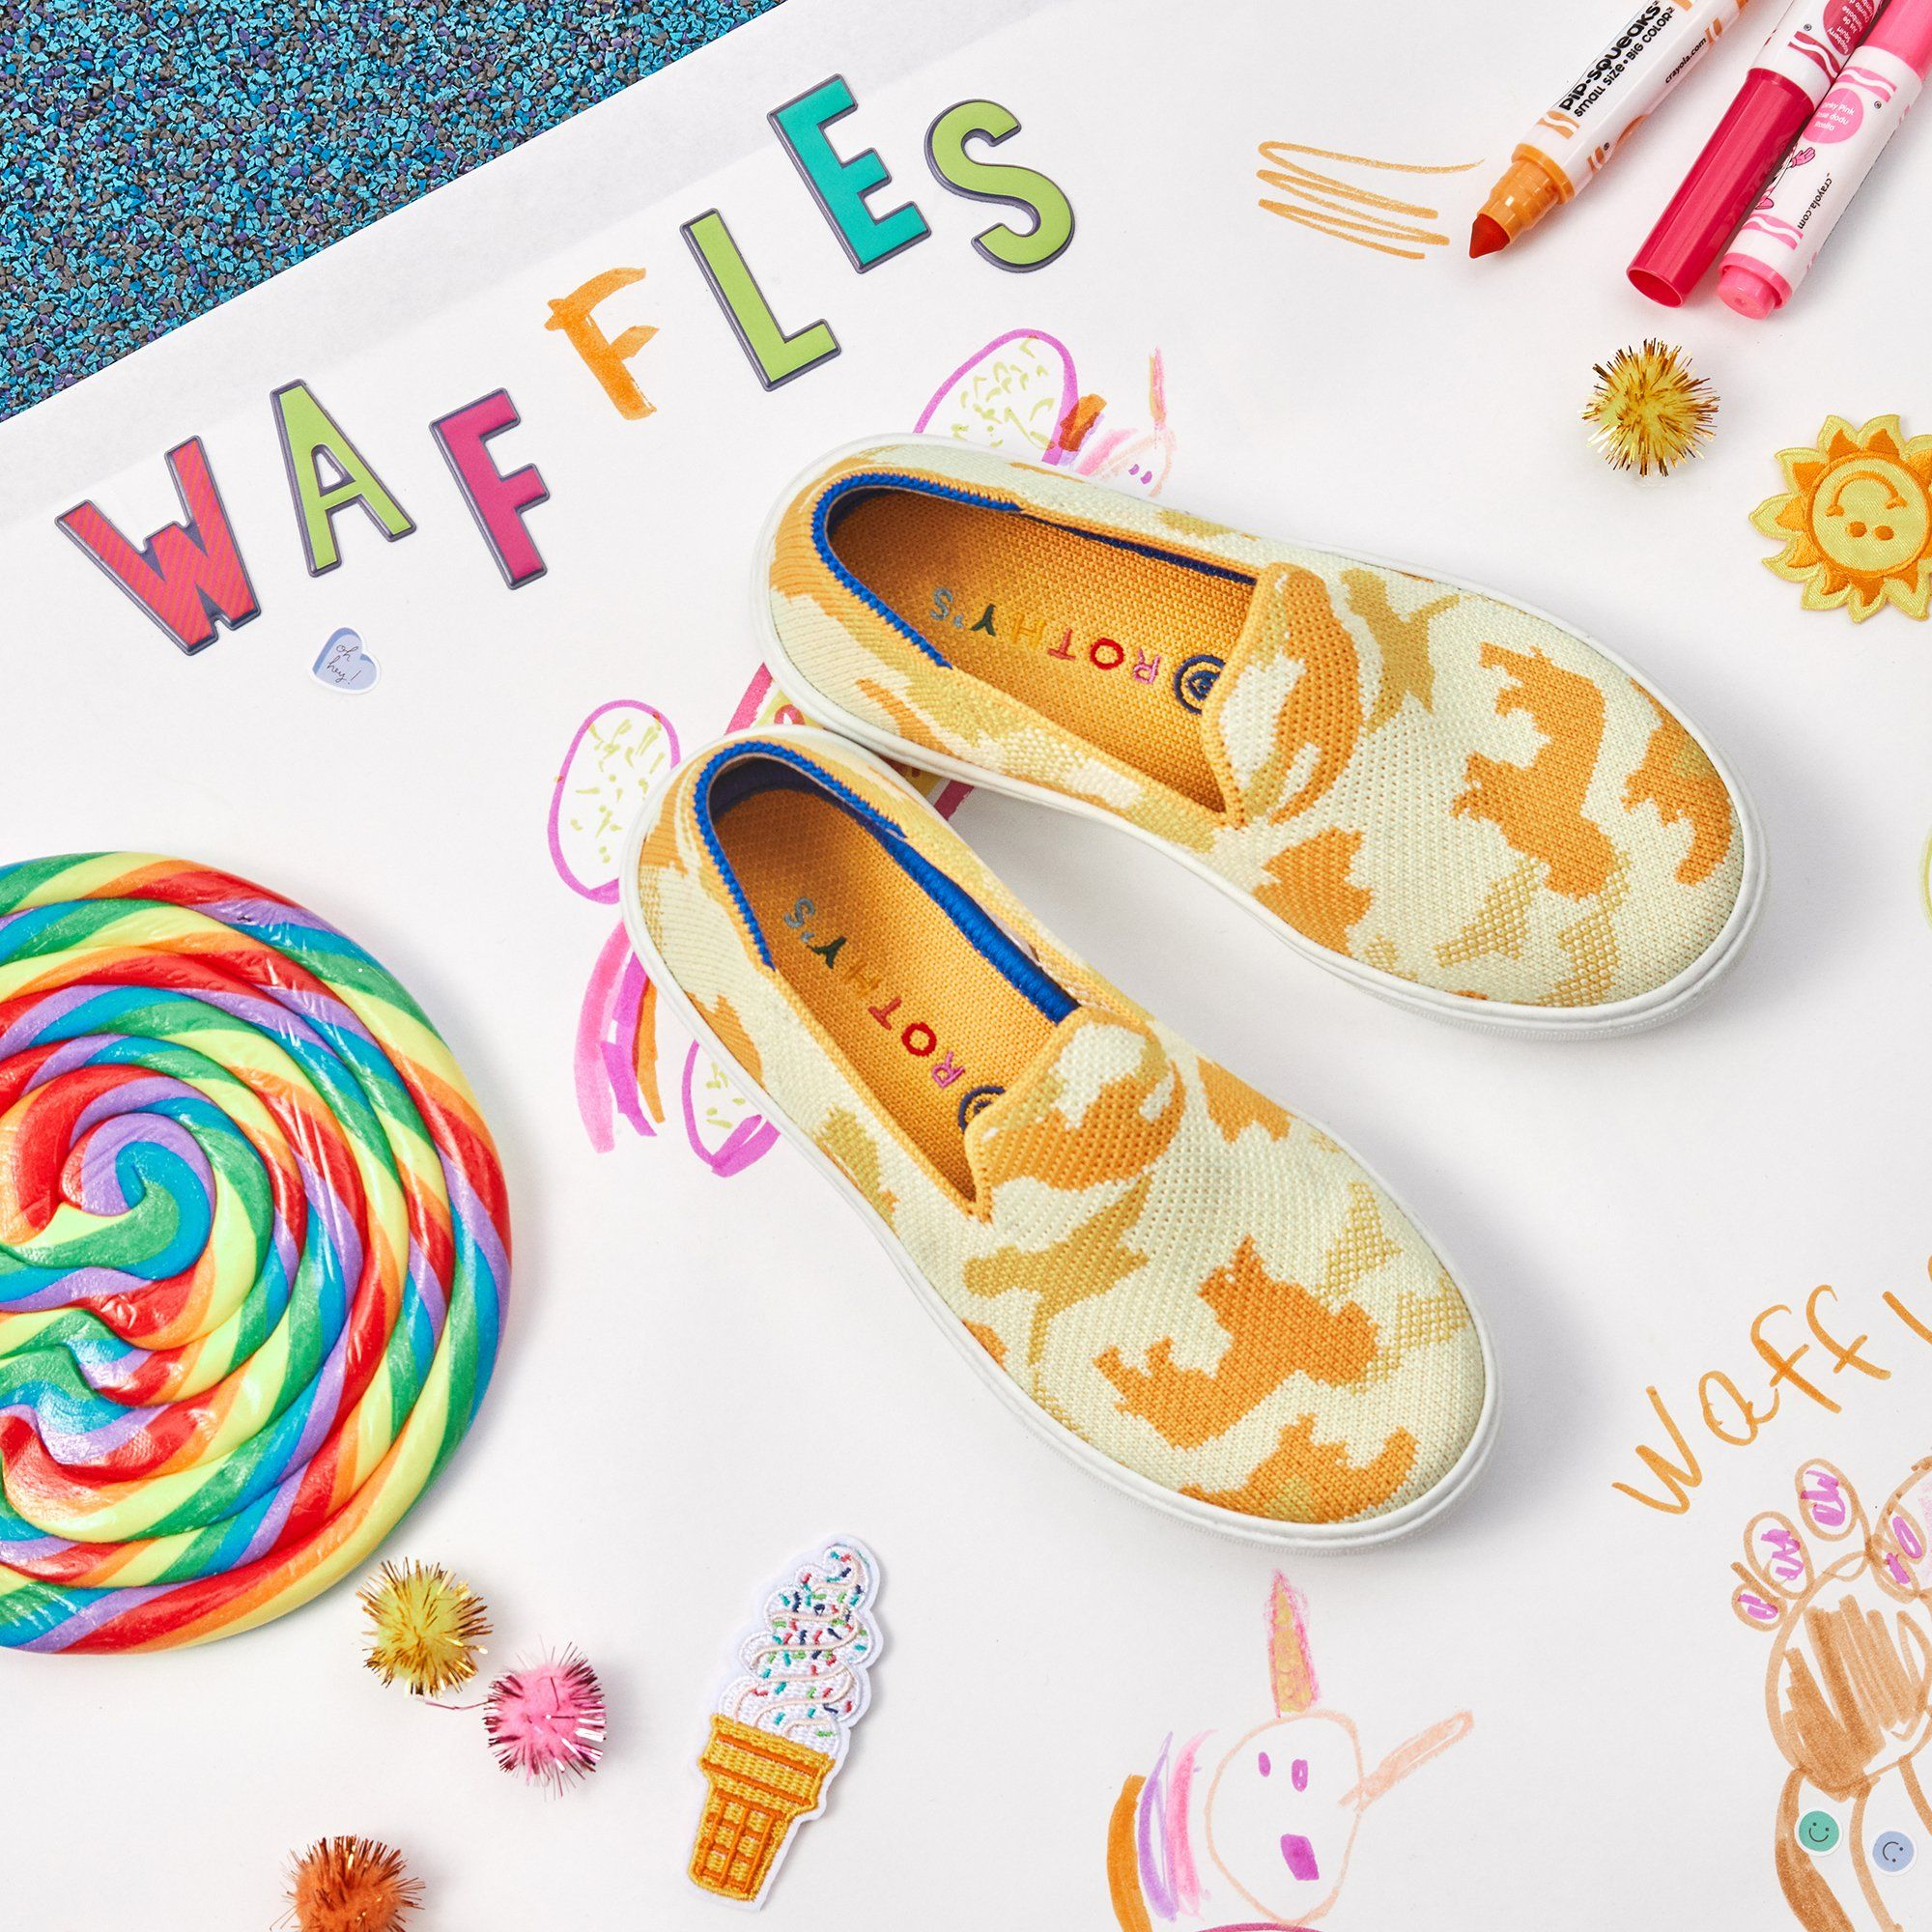 Rothy's Launched New Kids' Sneakers and Adults Everywhere Are Jealous